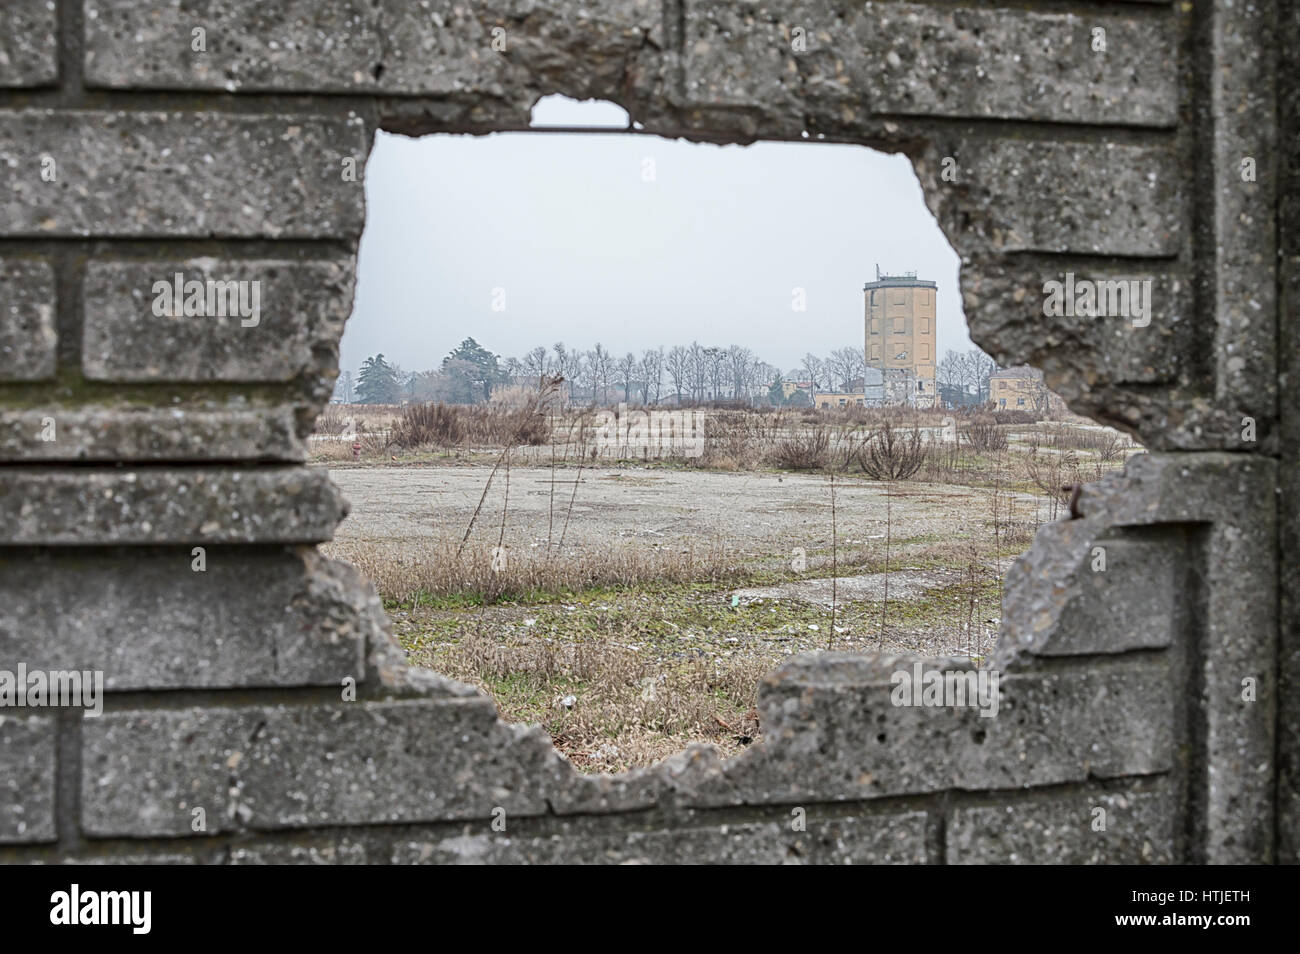 Ruins of an old factory in a wasteland, view through broken wall - Stock Image